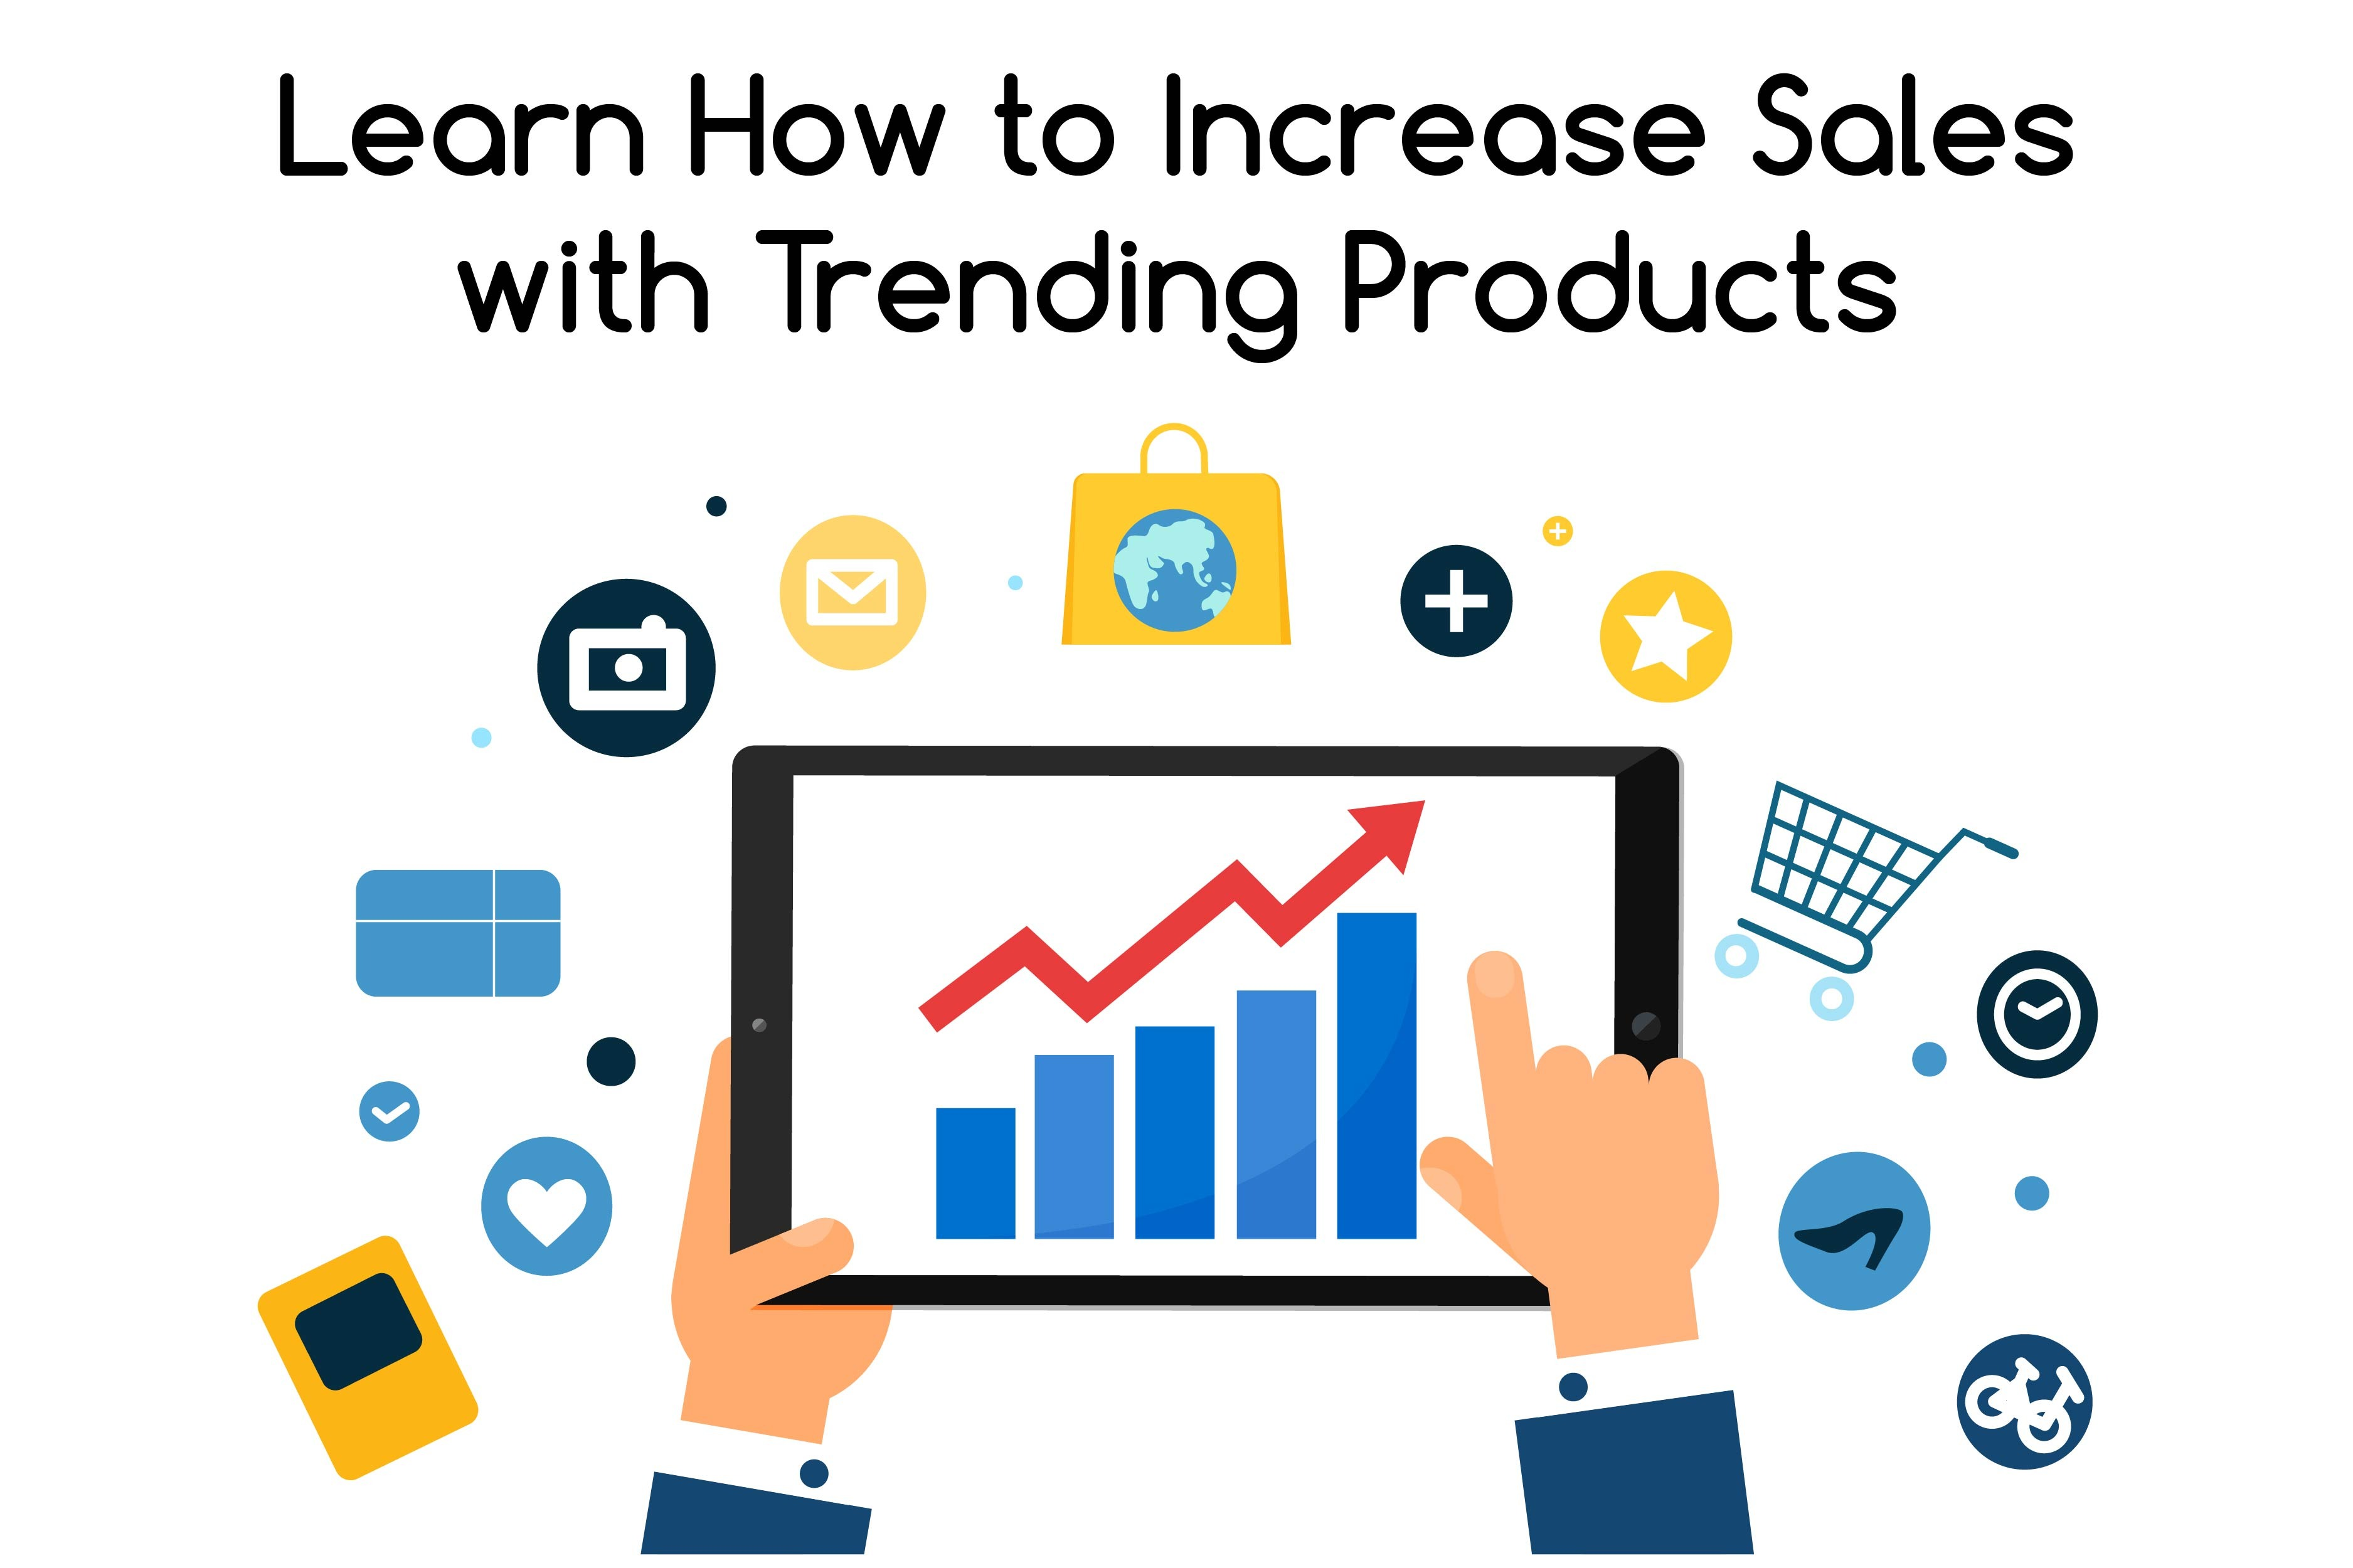 Increase sales with trending products